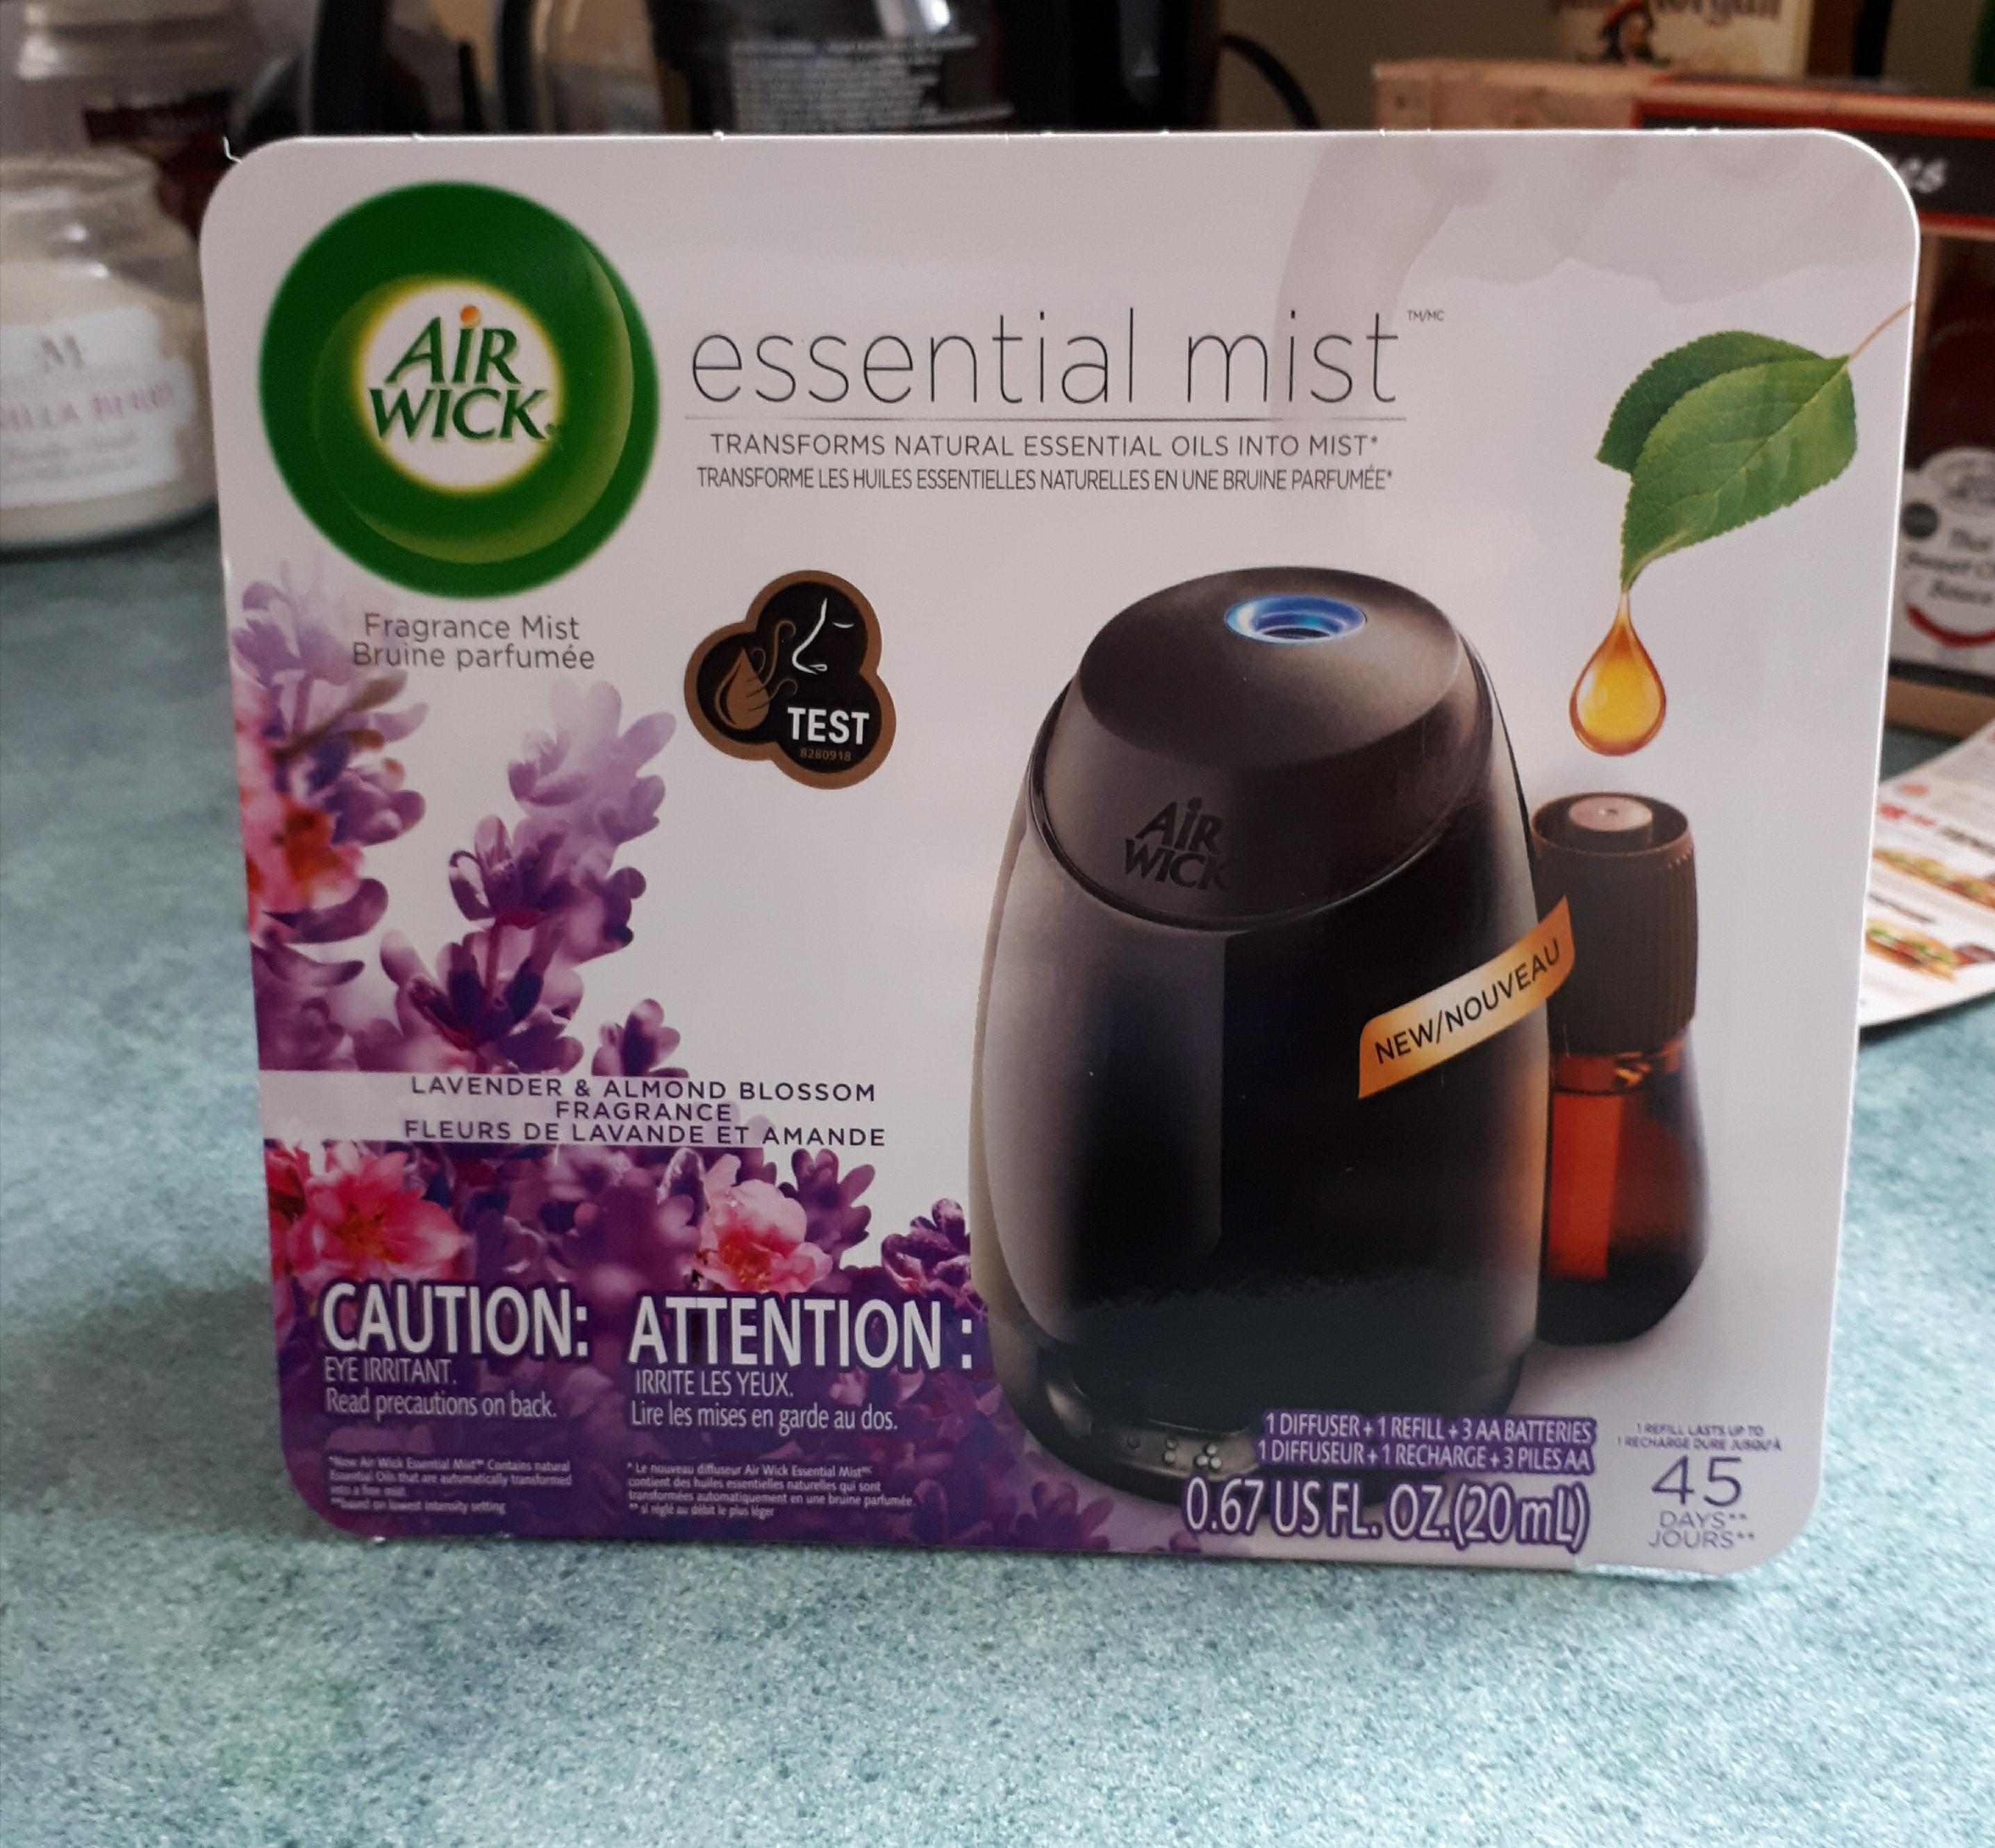 Air Wick Essential Mist Fragrant Mist Diffuser Reviews In